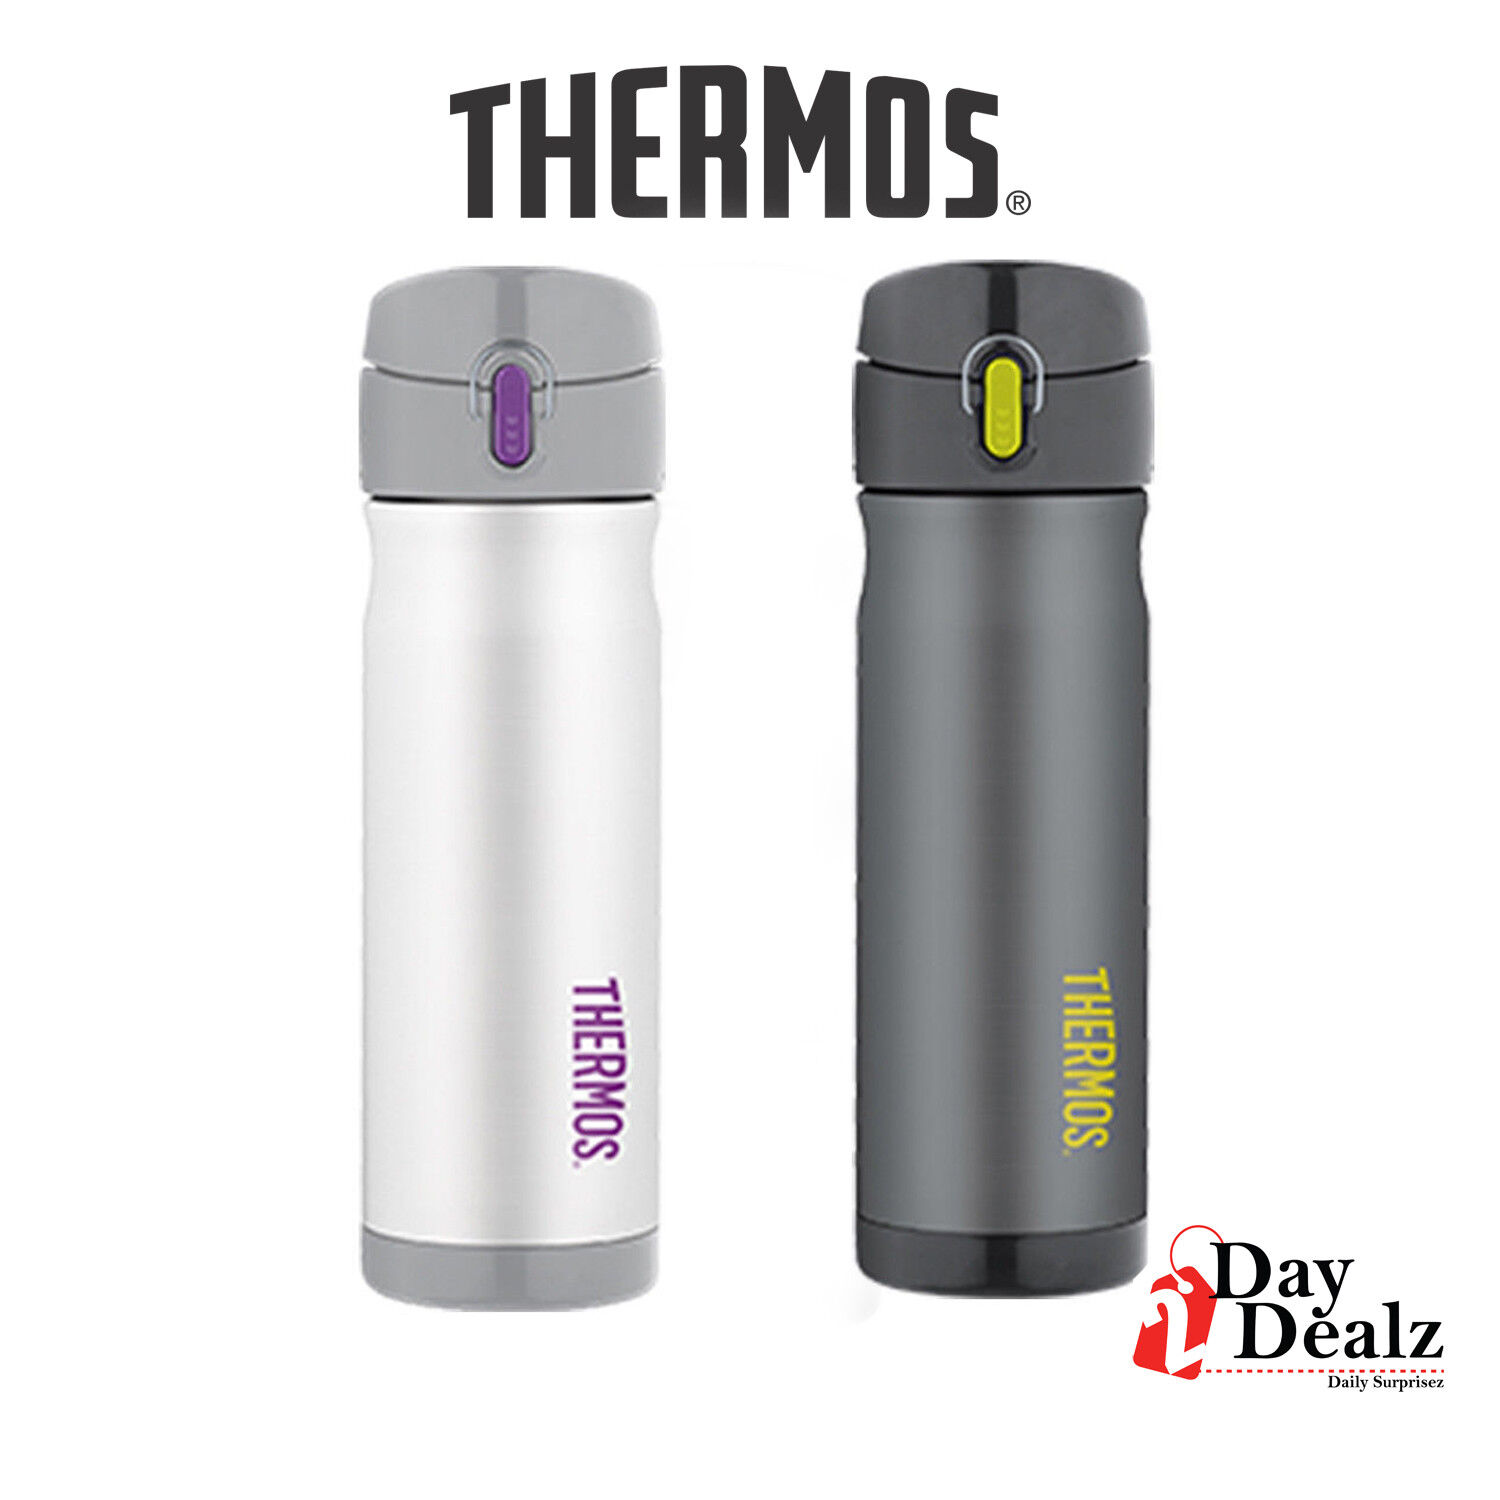 NEW THERMOS 16 OUNCE STAINLESS STEEL COMMUTER VACCUM INSULAT